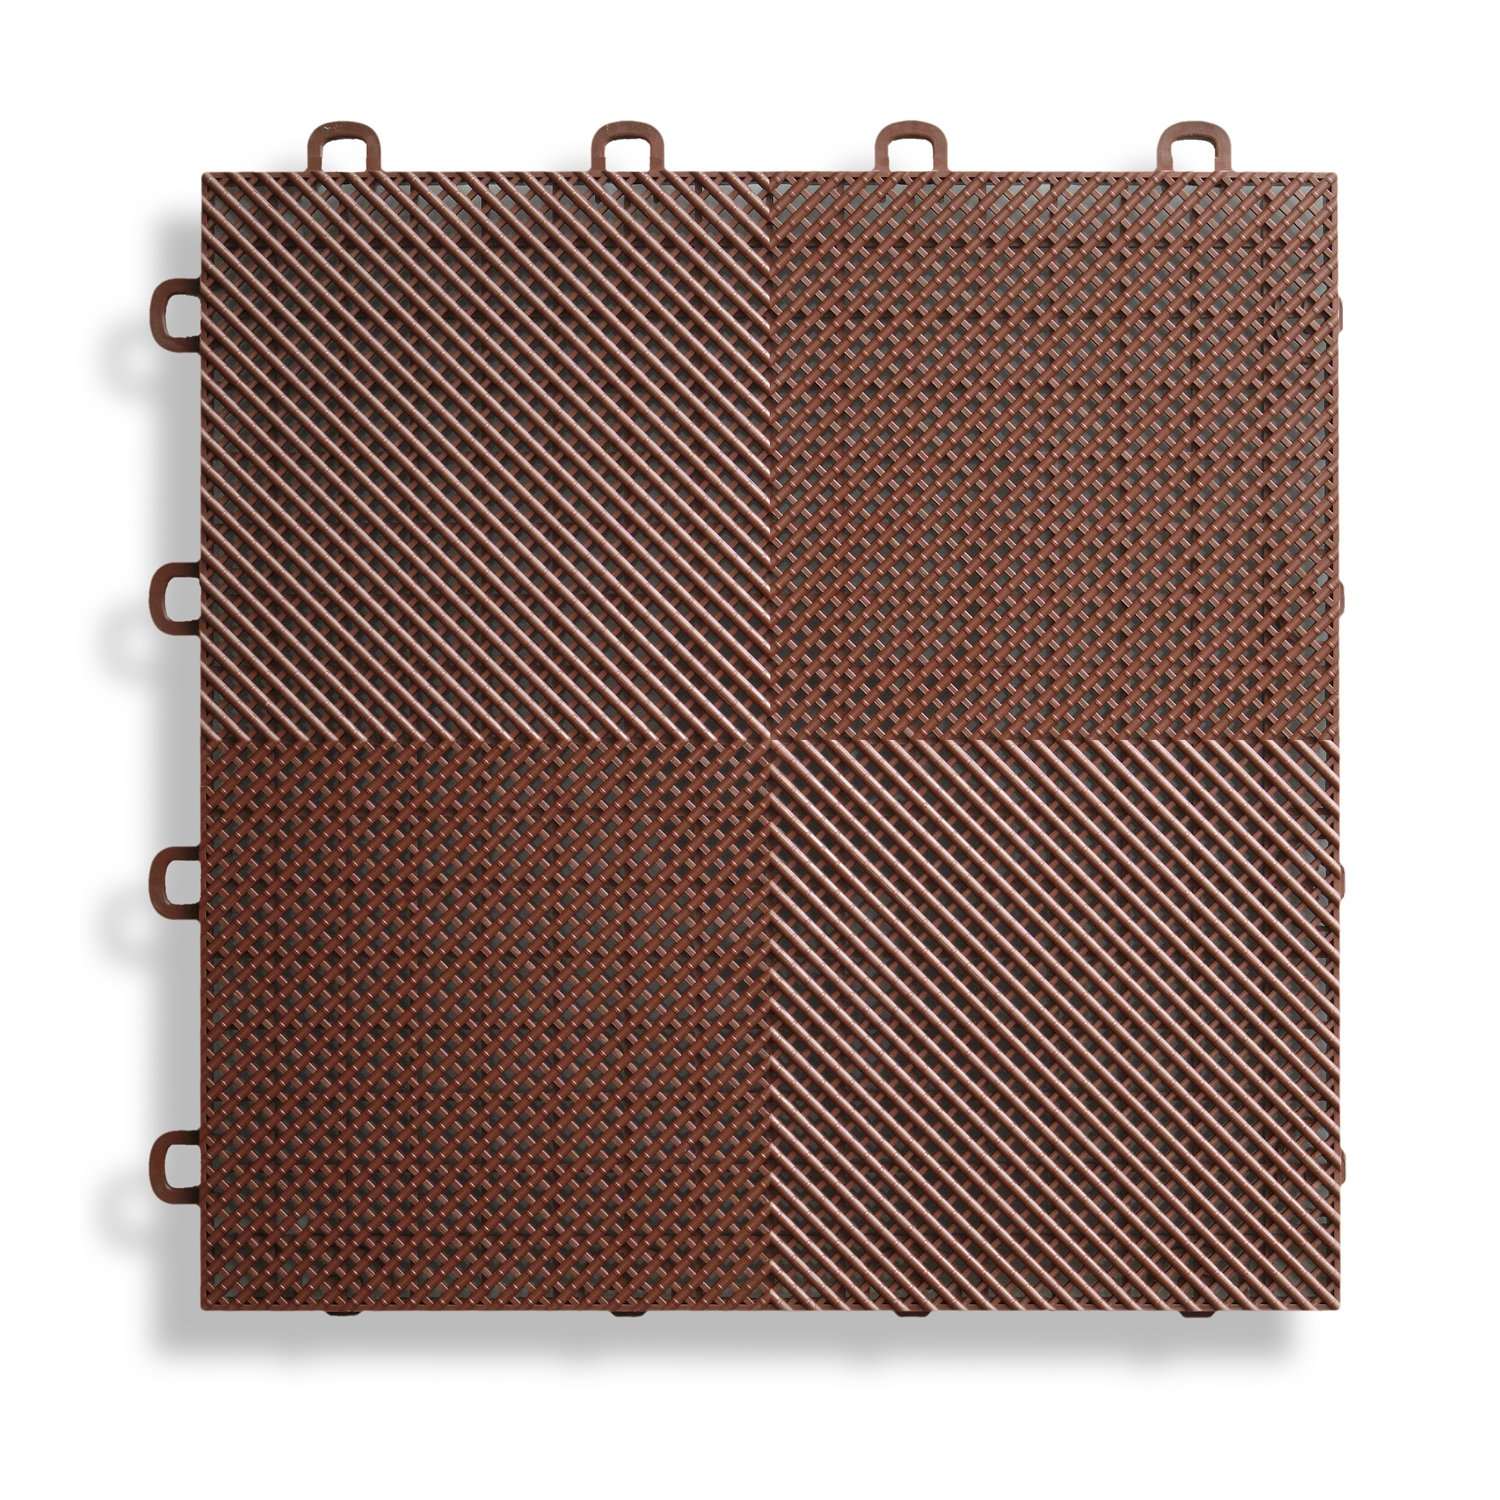 BlockTile B2US5230 Deck And Patio Flooring Interlocking Tiles Perforated  Pack, Brown, 30 Pack   Construction Tiles   Amazon.com